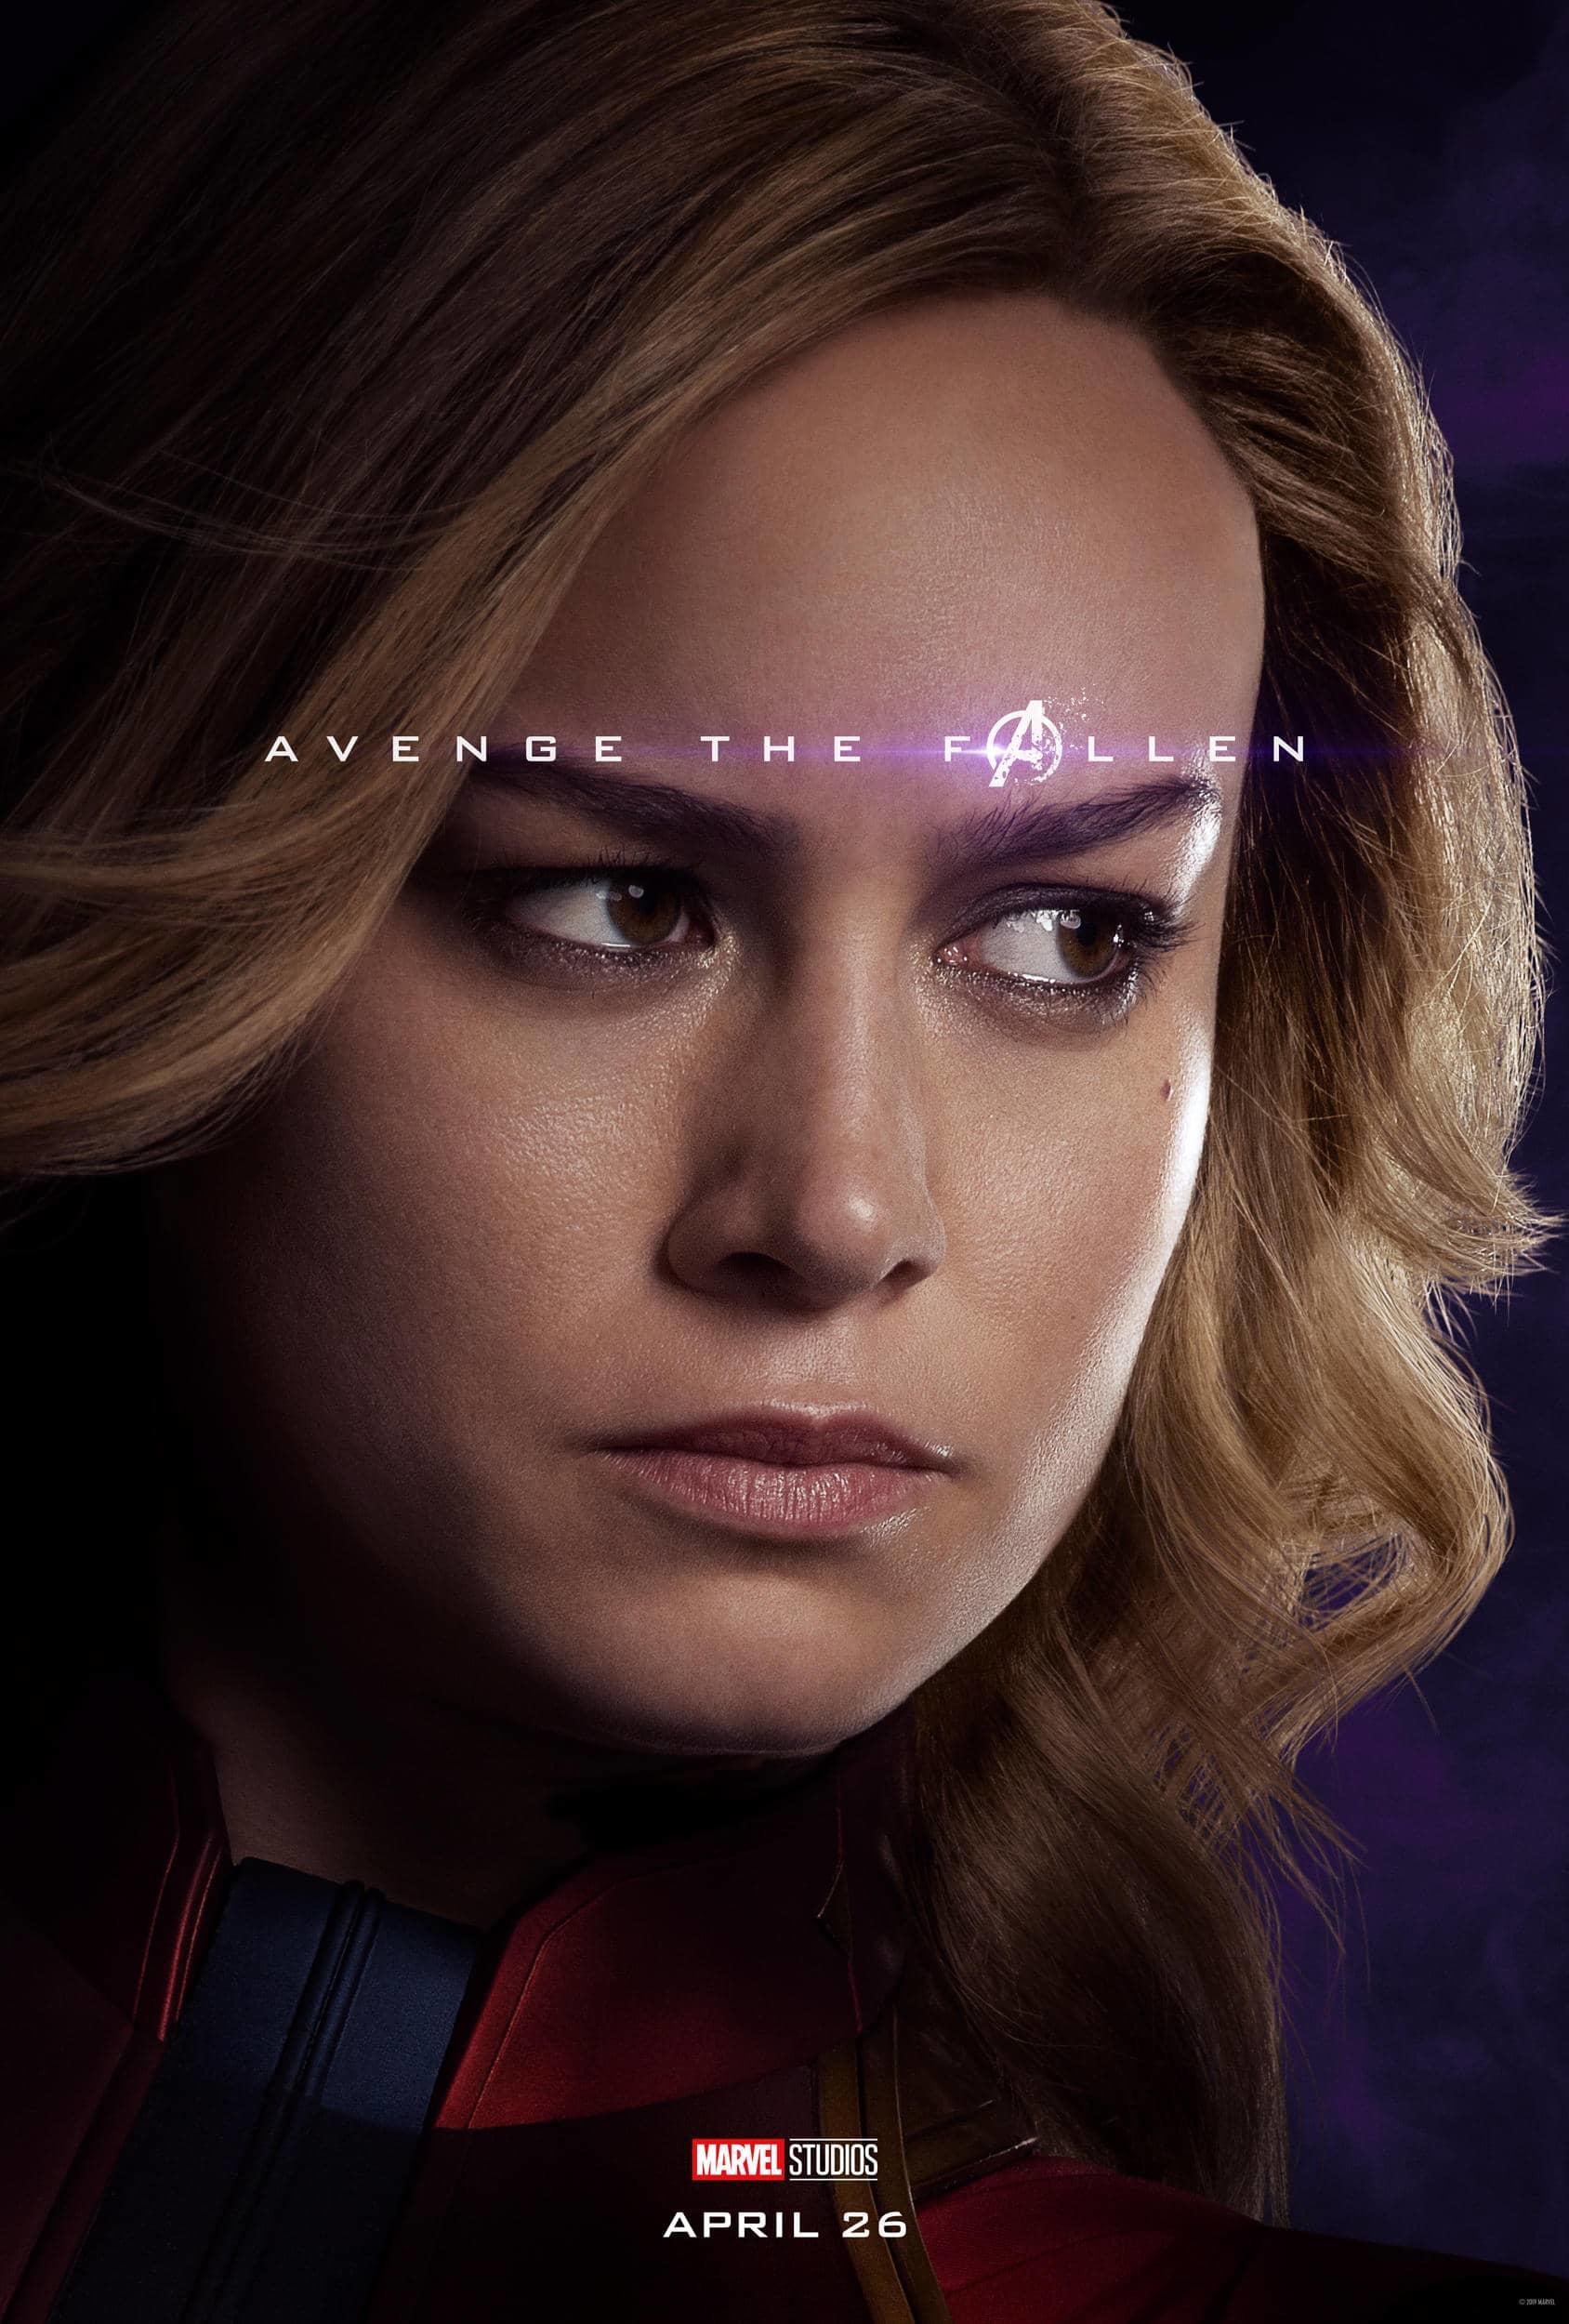 Marvel Studios' Avengers: Endgame Movie Poster Captain Marvel (Carol Danvers) Brie Larson